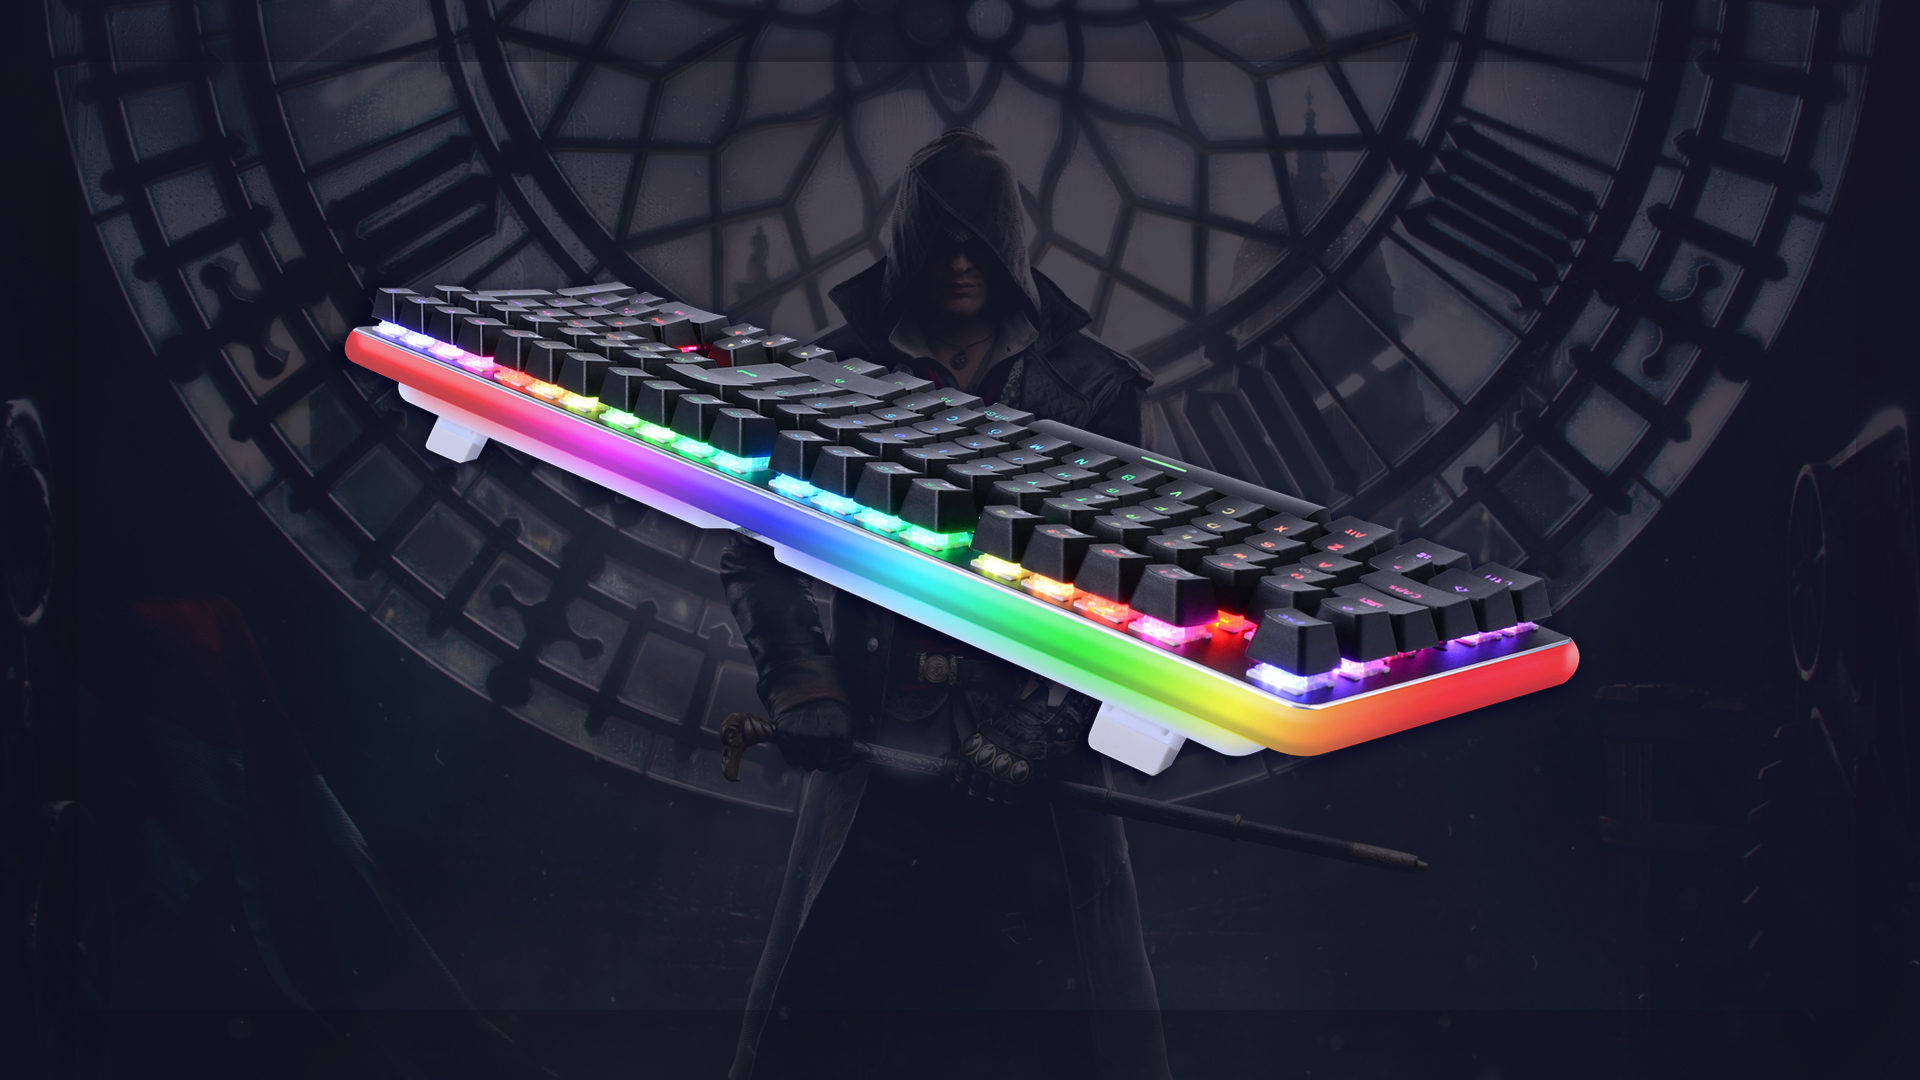 Gamepower Saber RGB